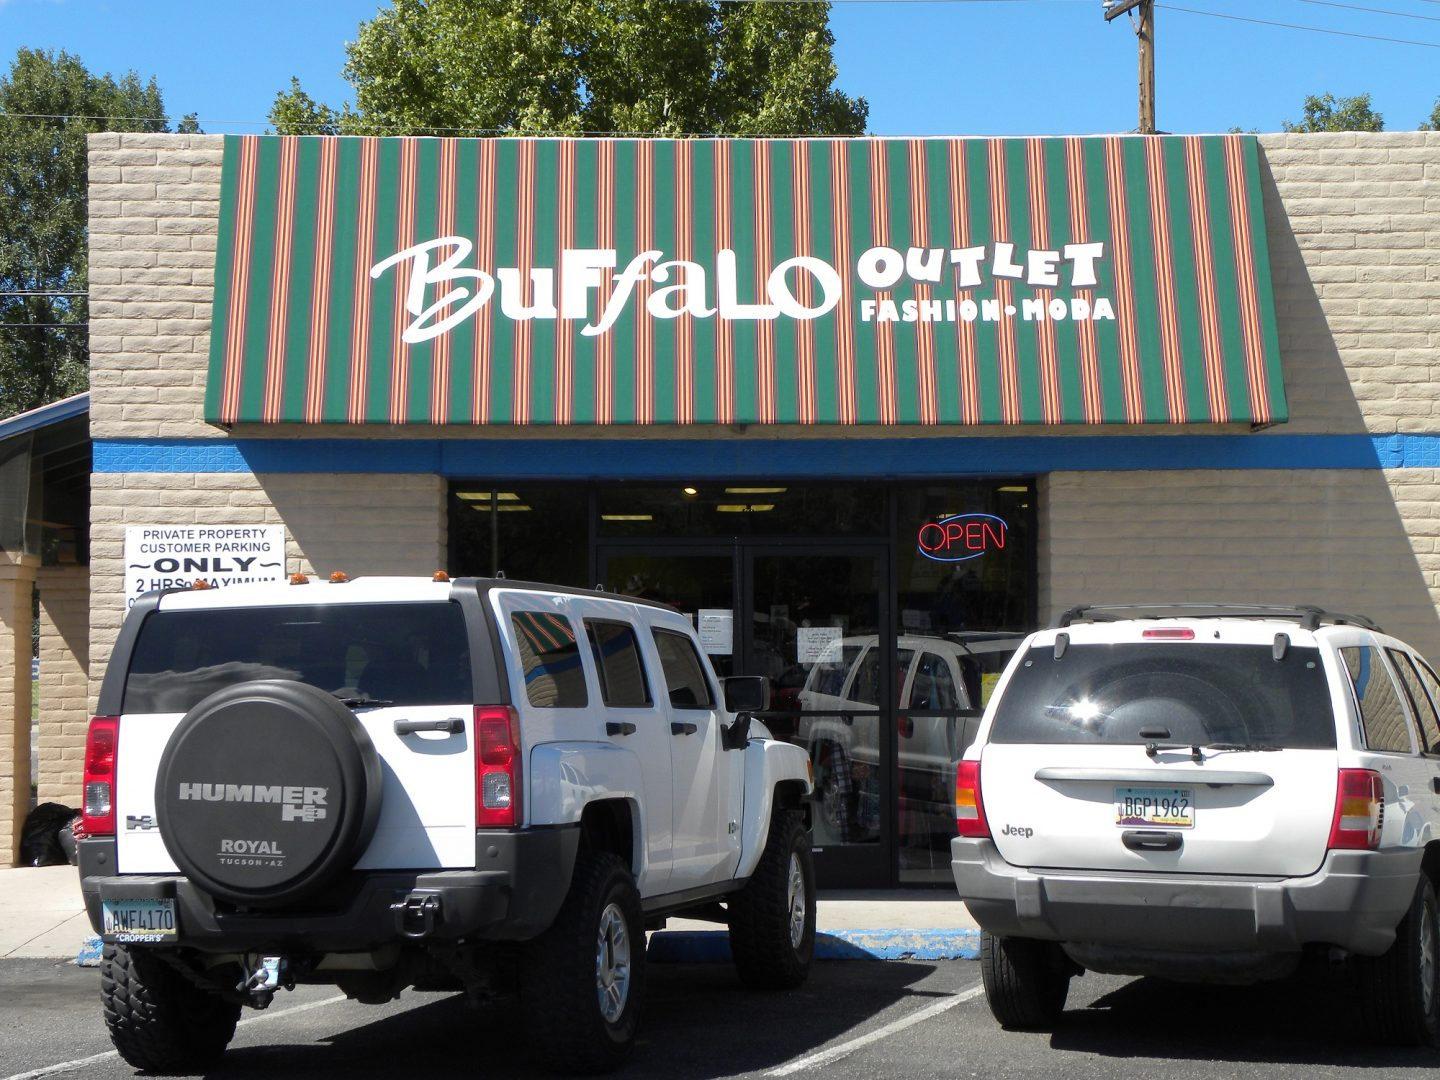 Tucson Commercial Awnings and Shade Products - Air and Sun ...